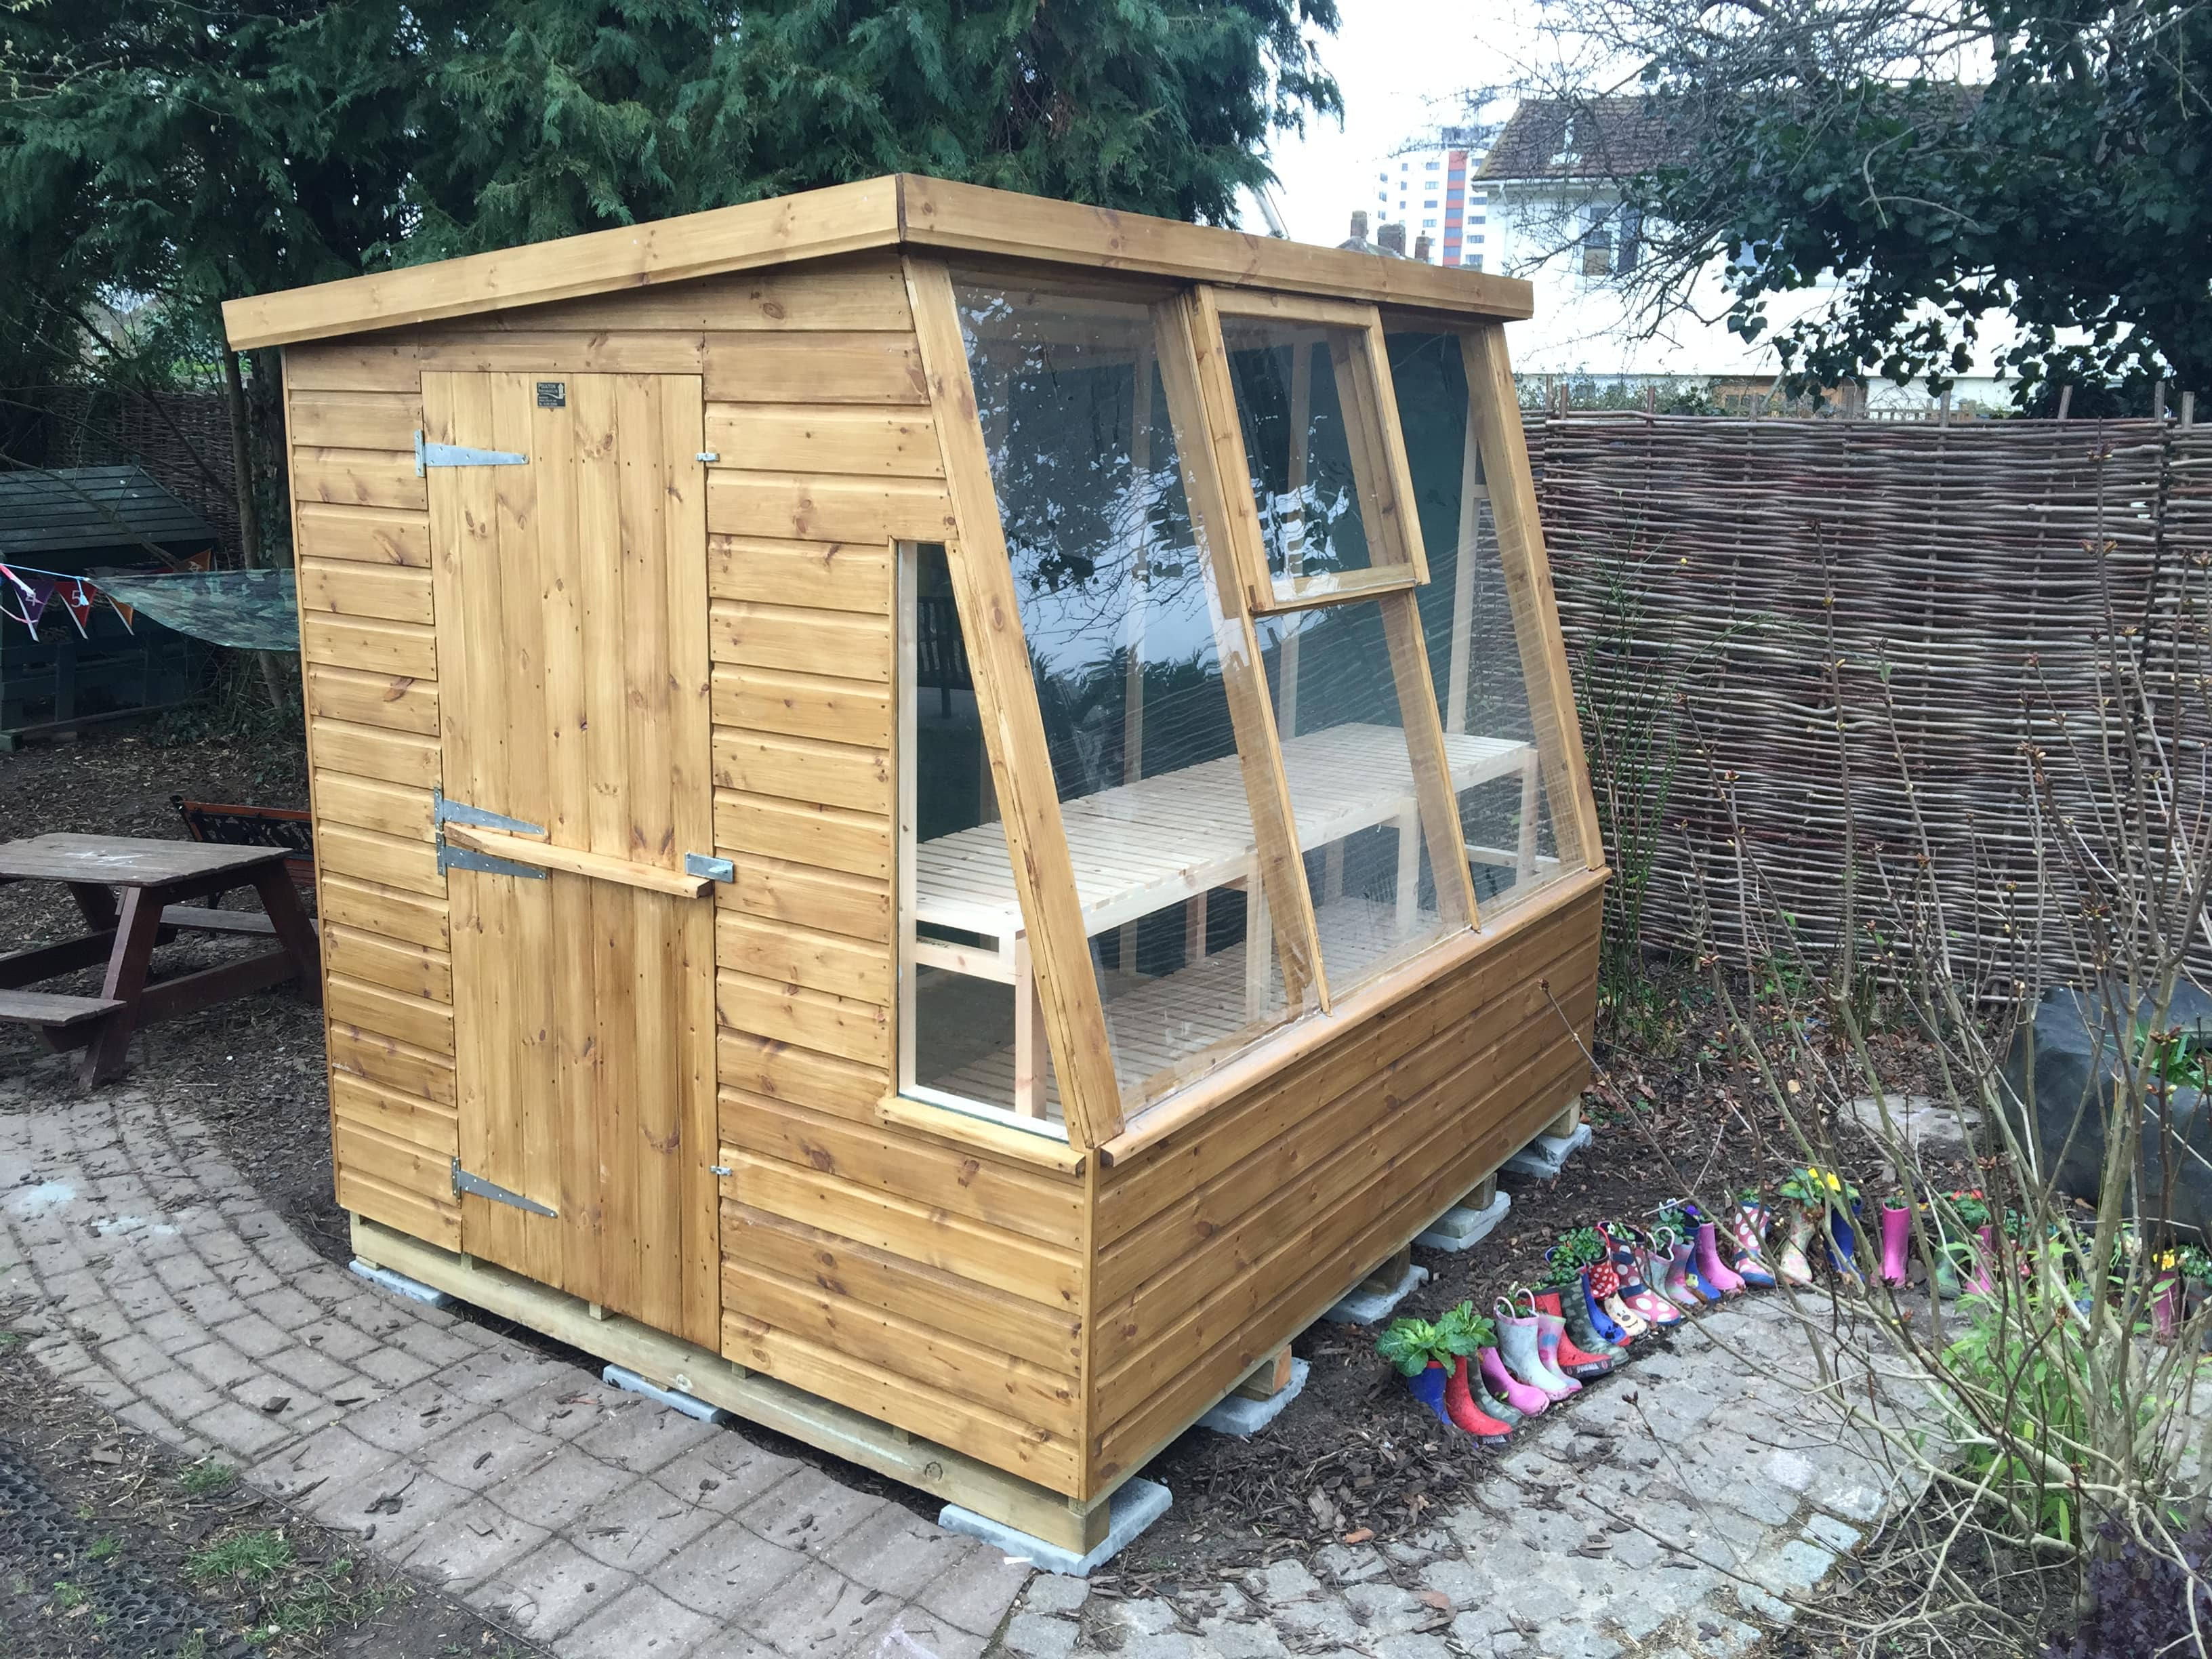 tour saturday wish on last to and with garden natural shed i benches loved that just tools homemade like potting handy see other sheds was gardening so excellent an the thoughts